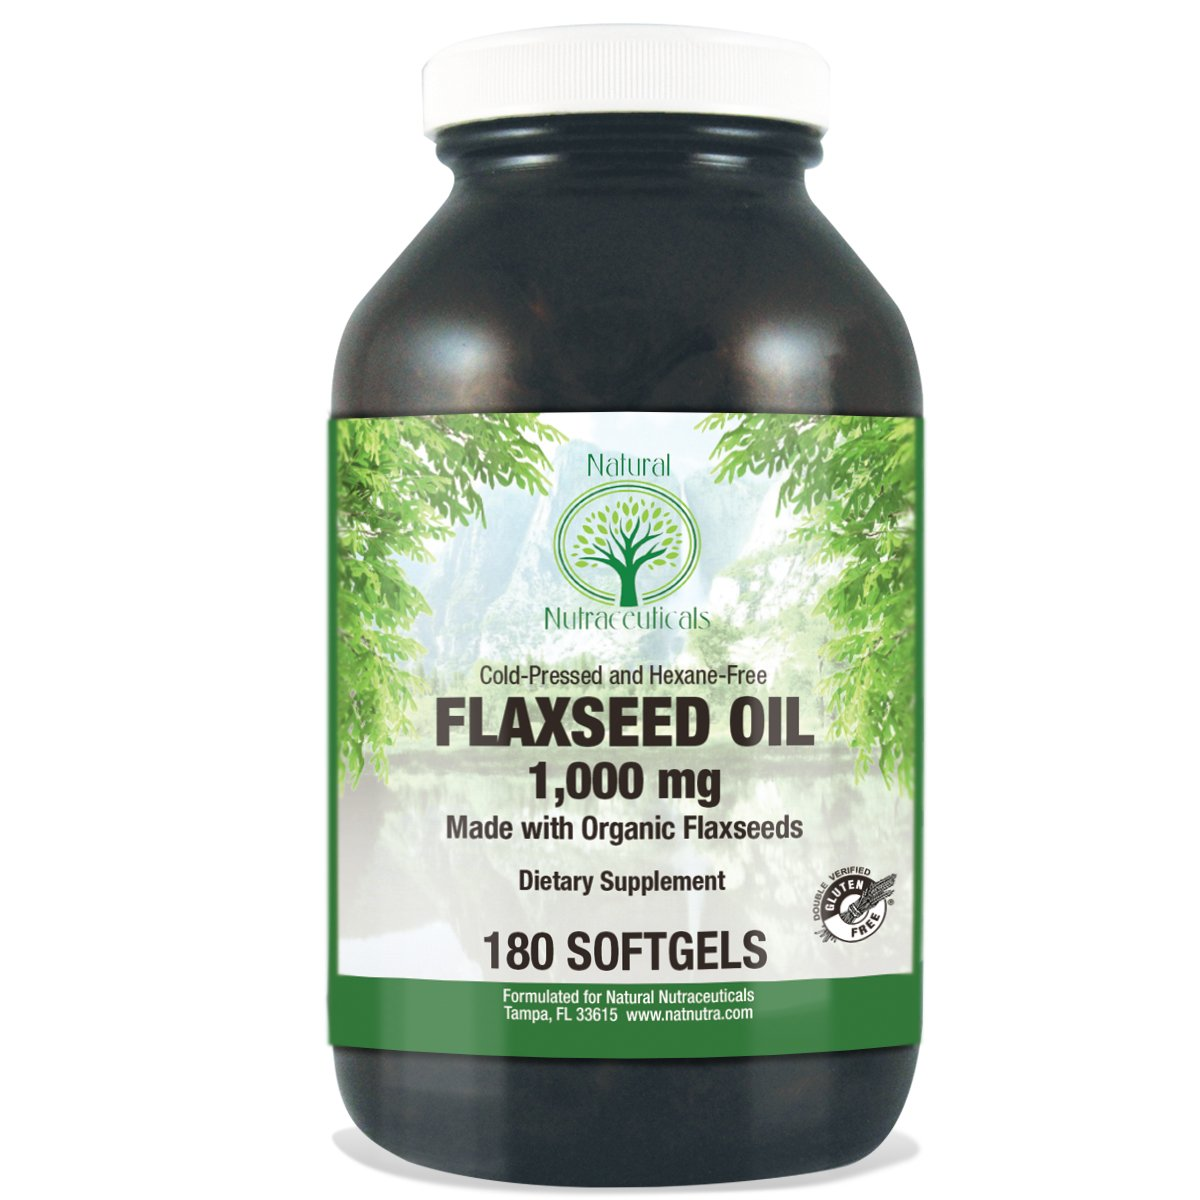 Natural Nutra Organic Cold Pressed Flaxseed Oil with Omega 3 6 9, 1000 mg, 180 Softgels